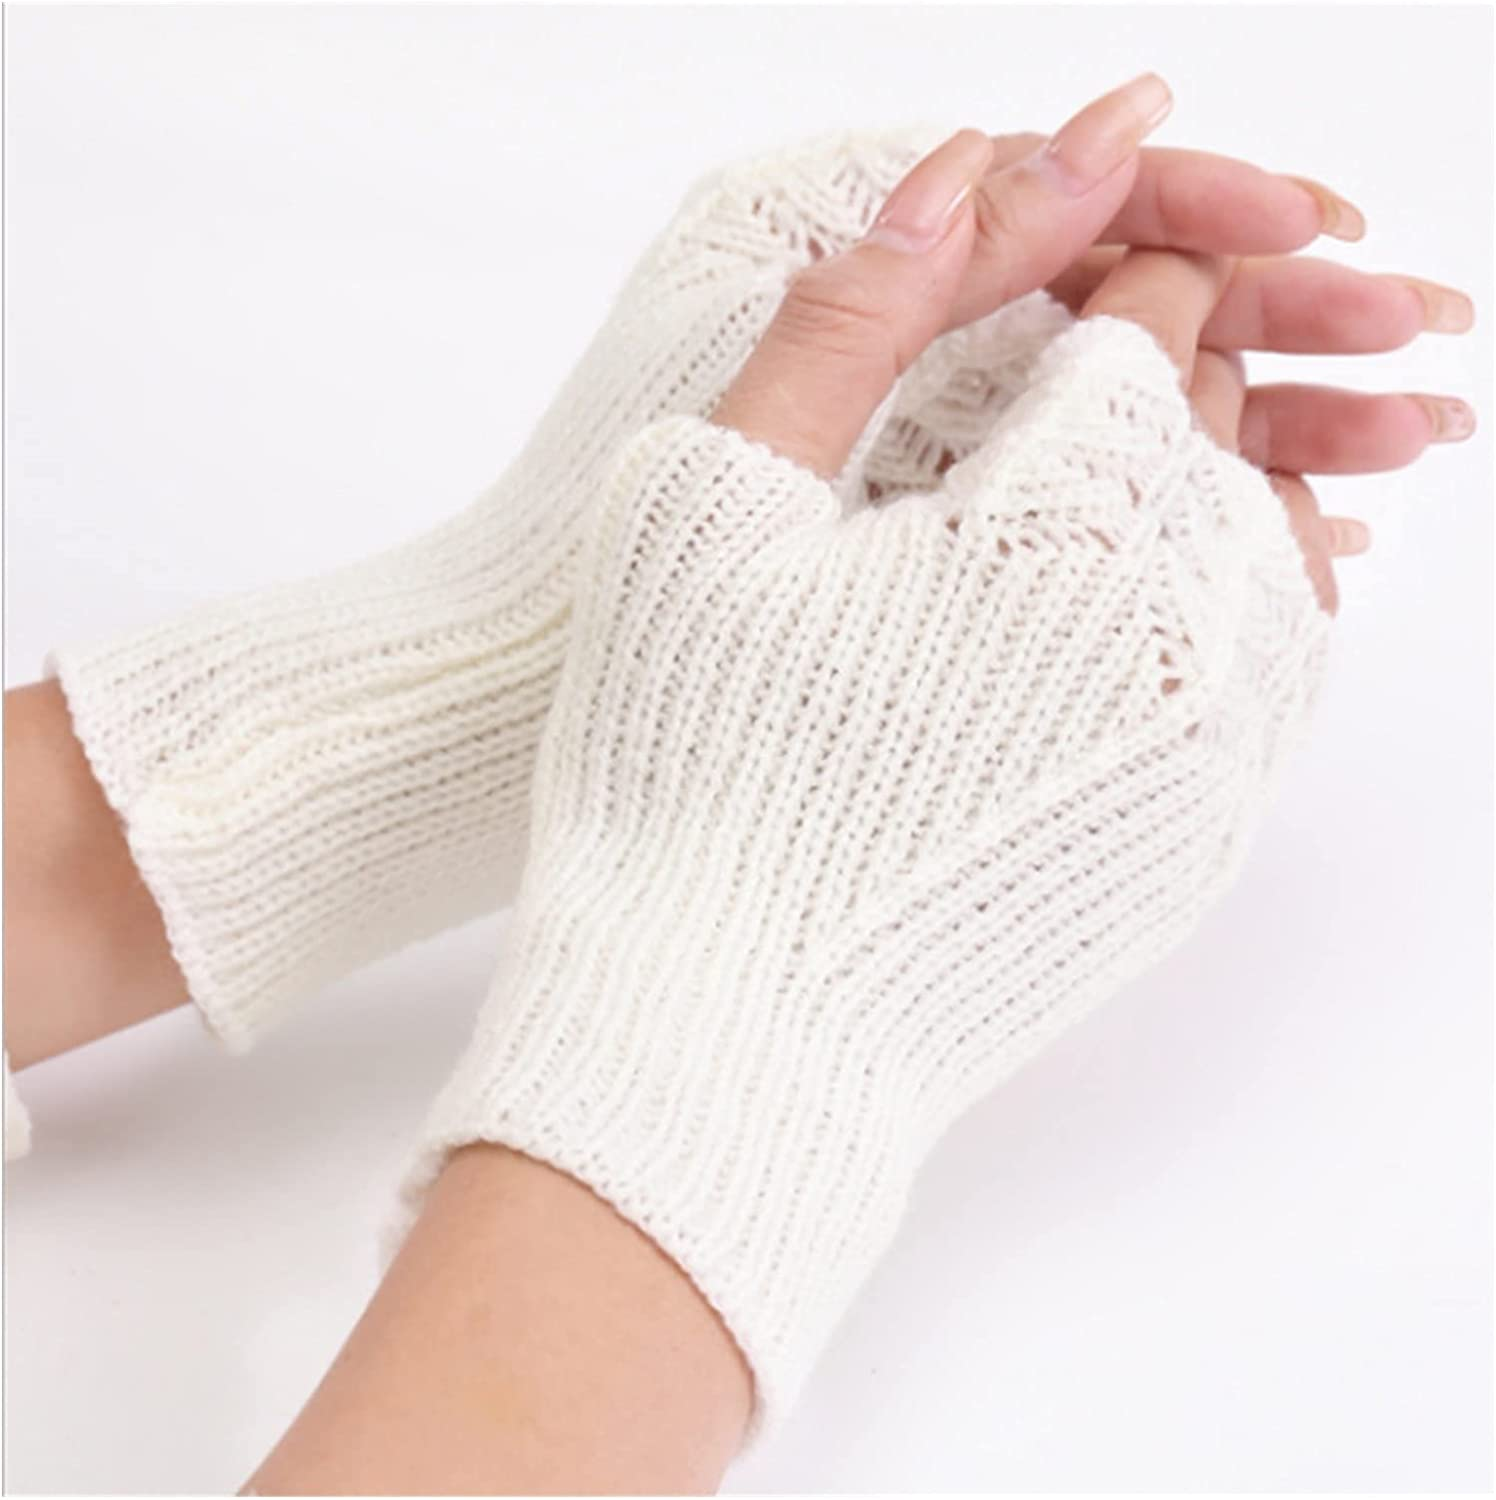 CHHNGPON Bridal Gloves Woman Ladies Fingerless Gloves Winter Warm Soft Knitted Mittens (Color : White, Gloves Size : One Size)